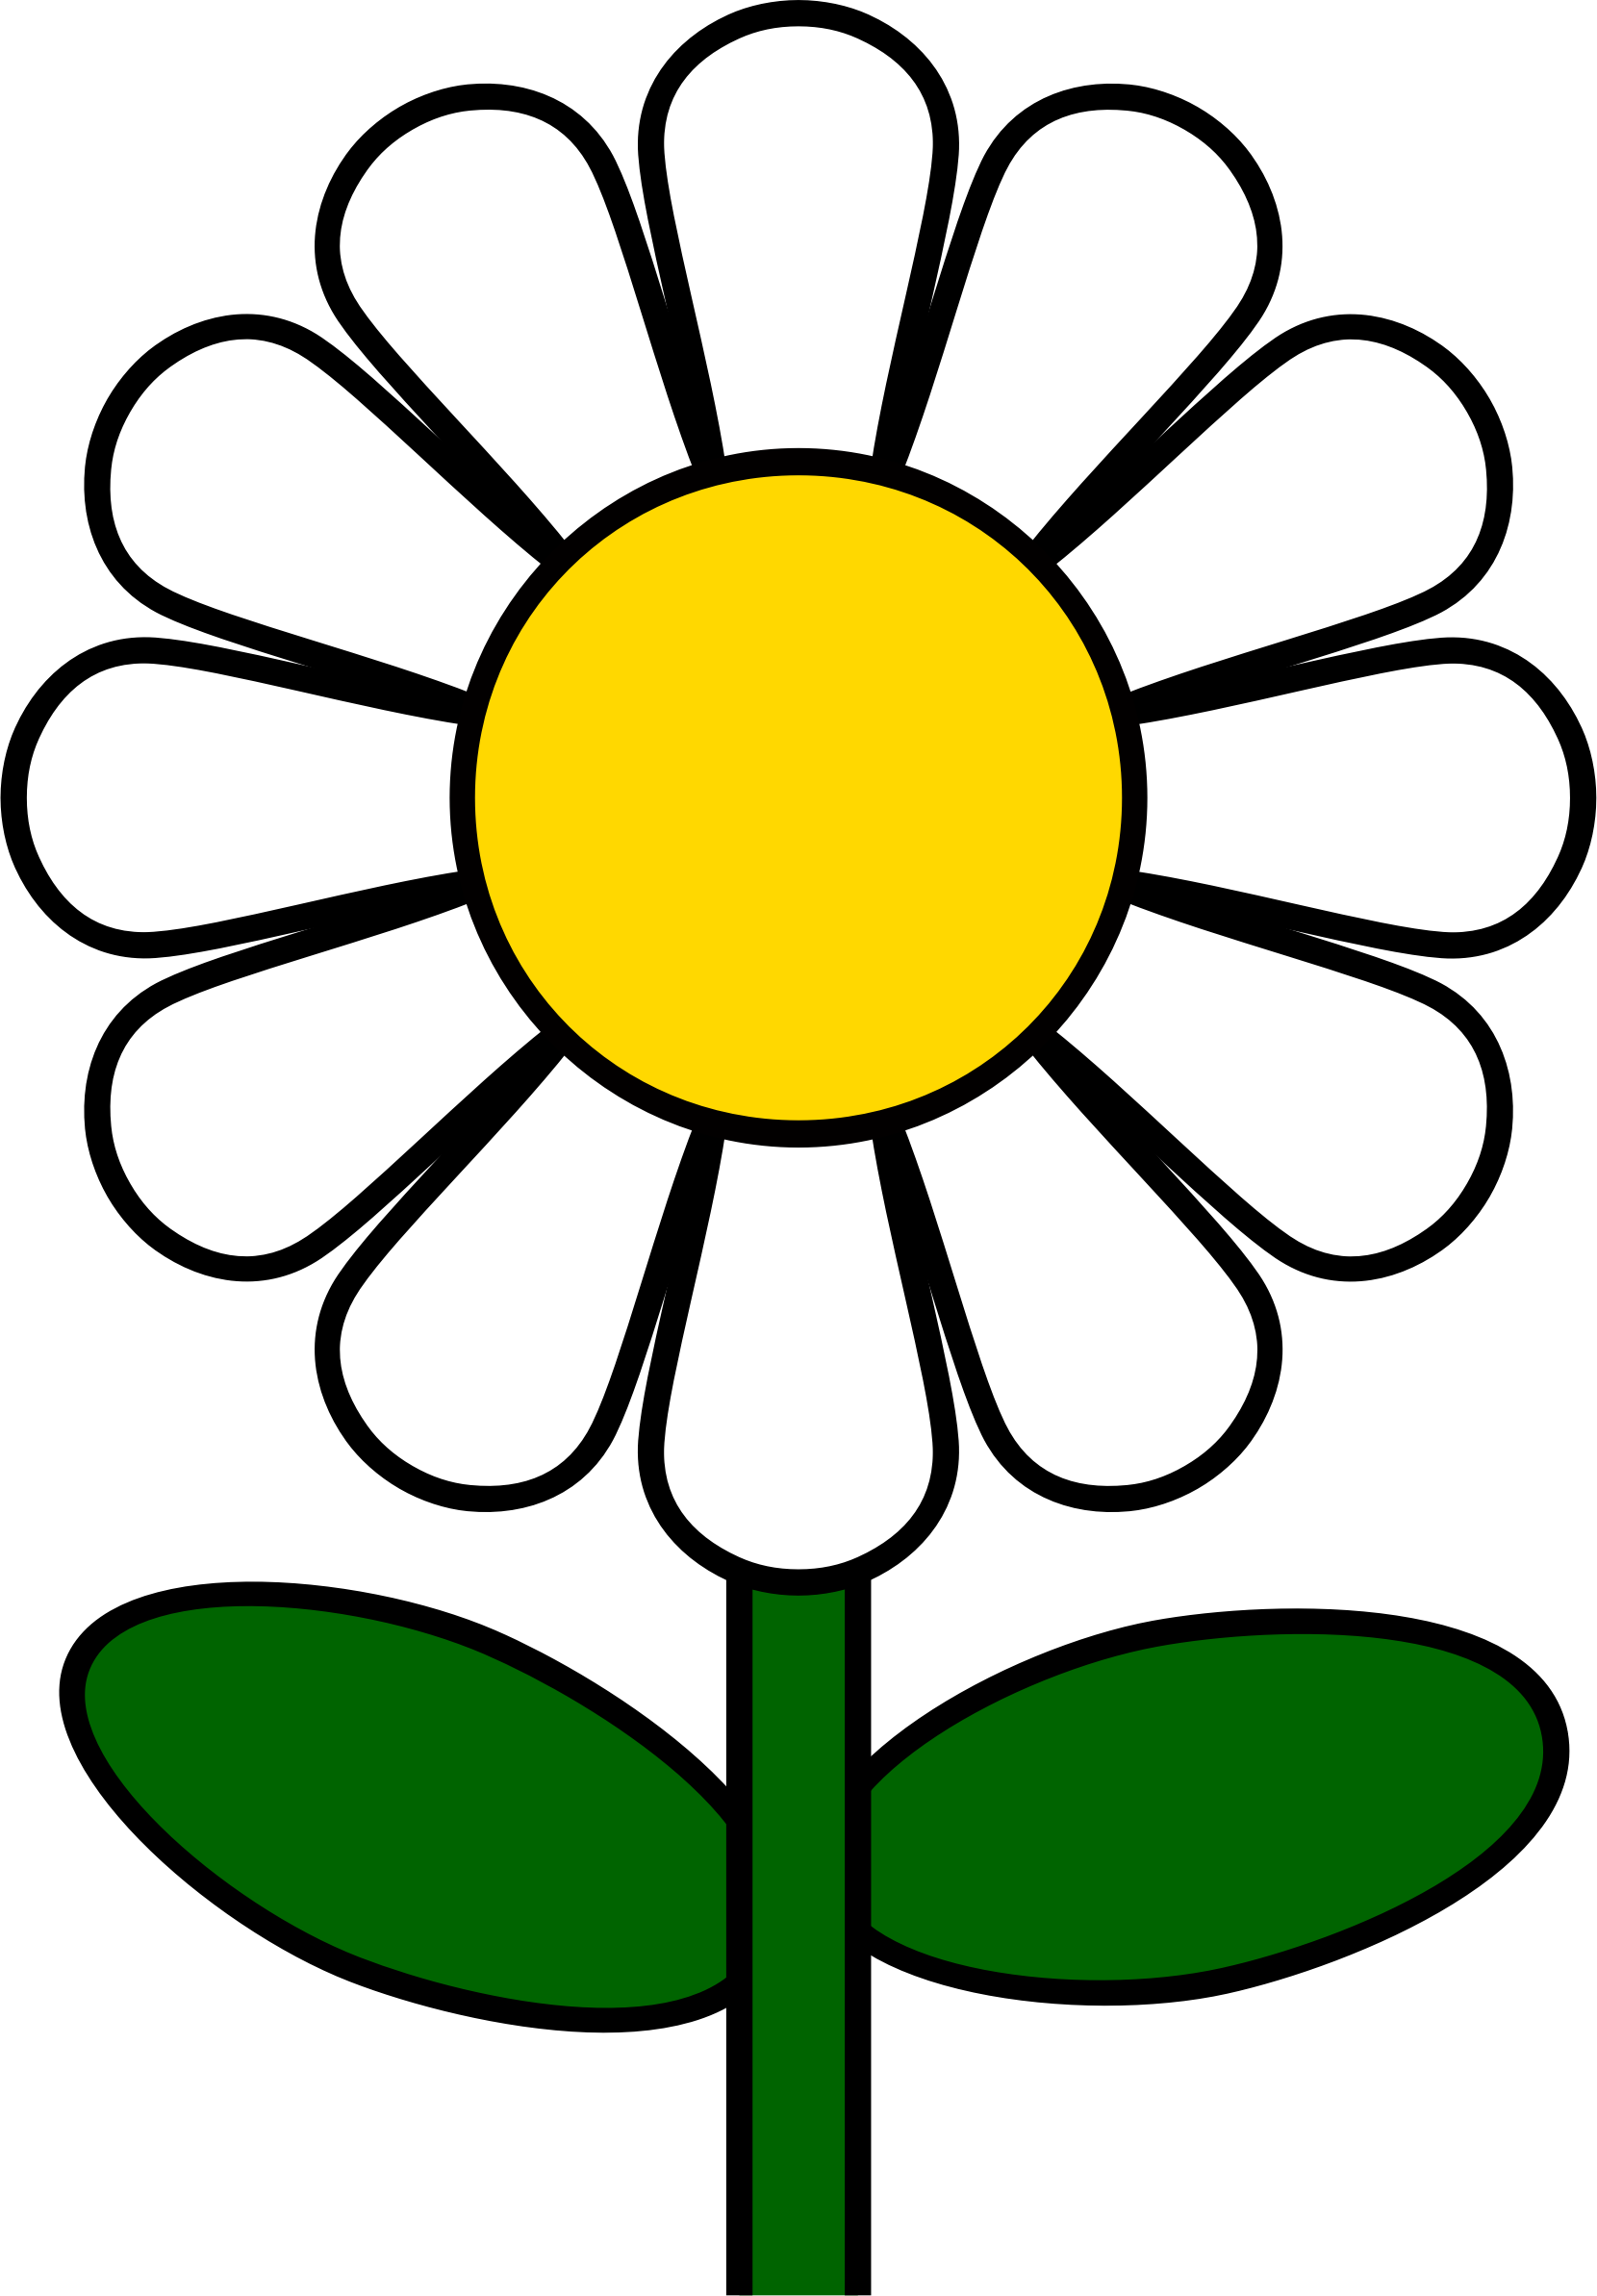 Clipart flowers daisy. Png templates silhouettes stencils